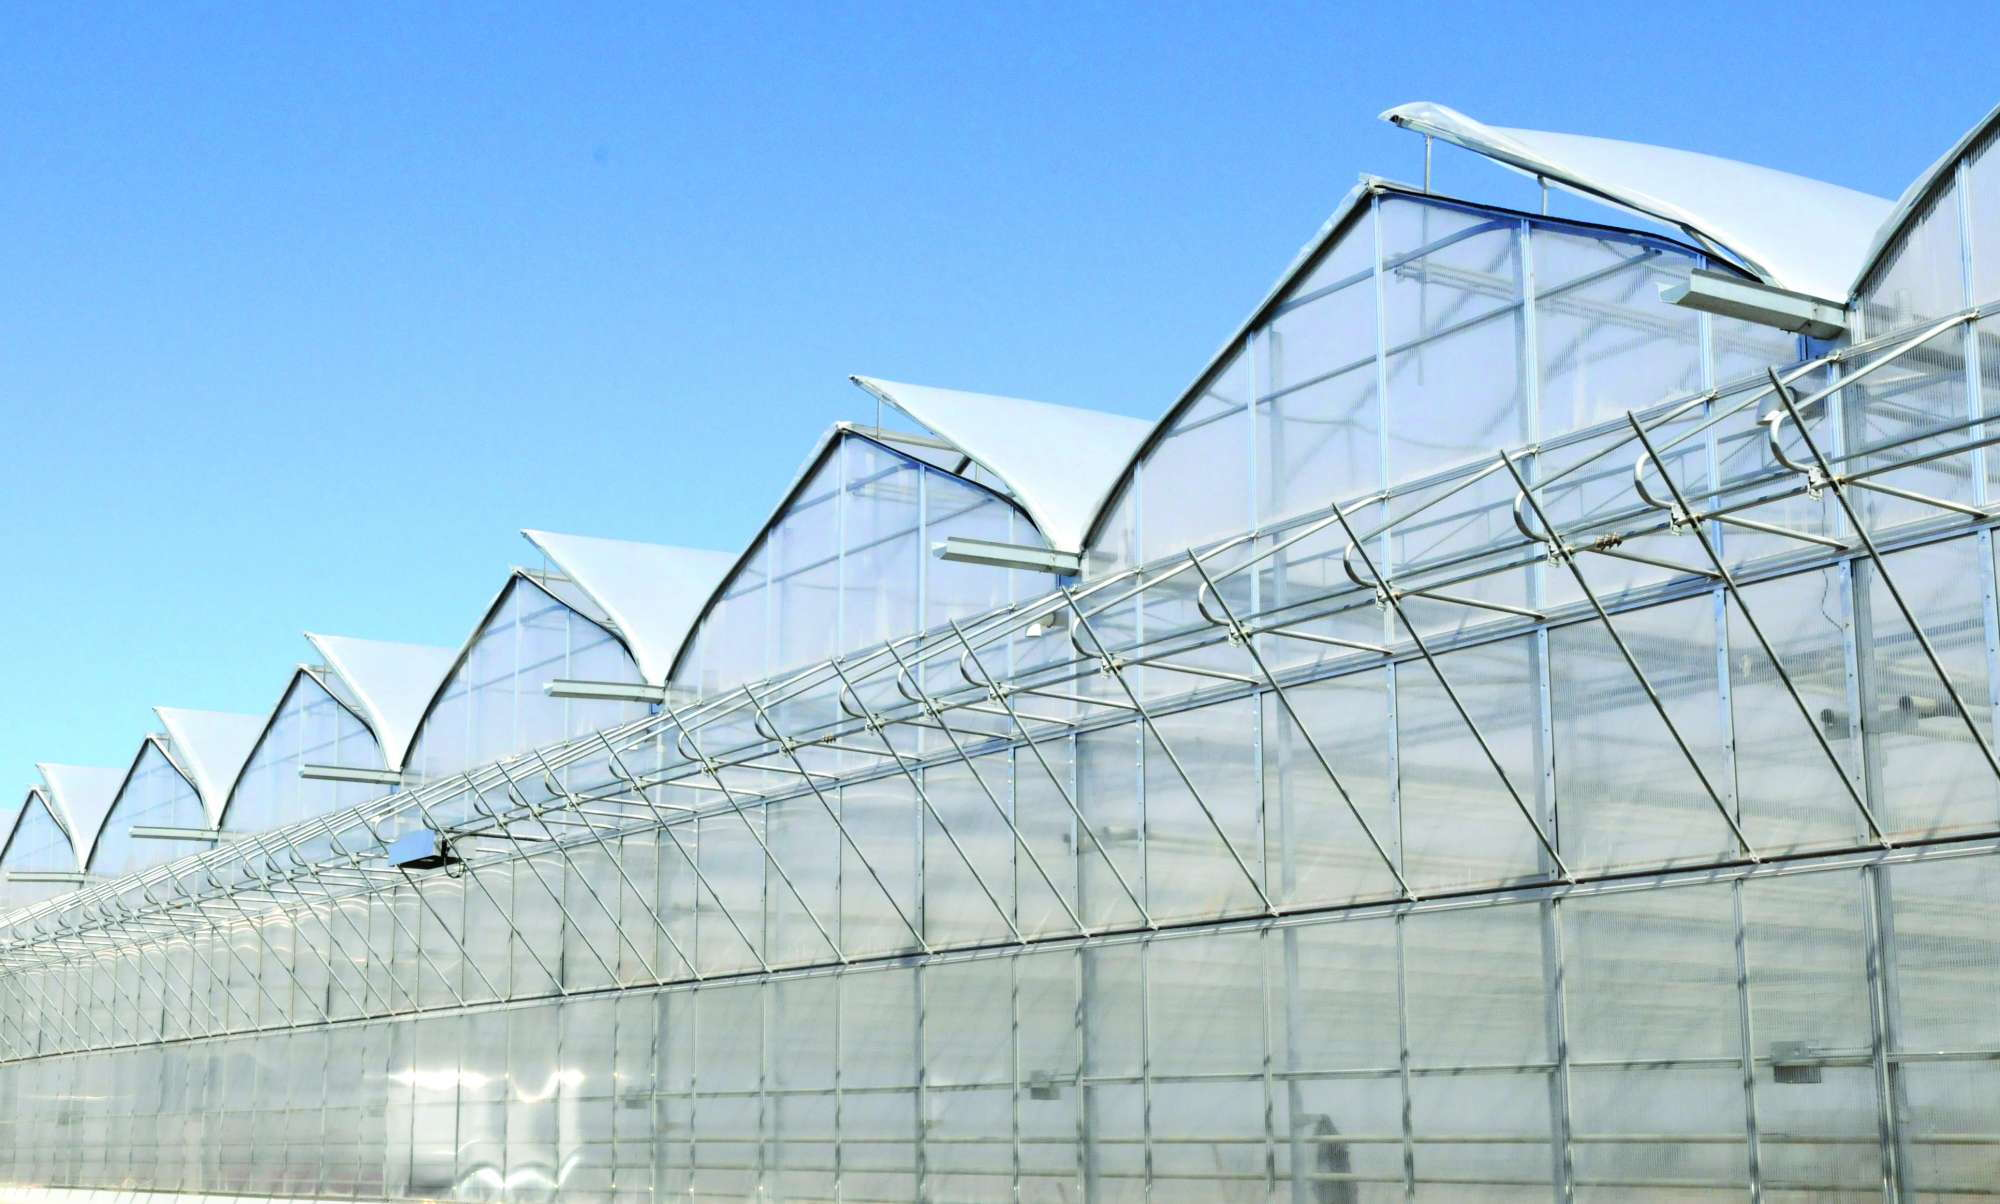 Top 10 Mistakes Greenhouse Growers Make When Planning An